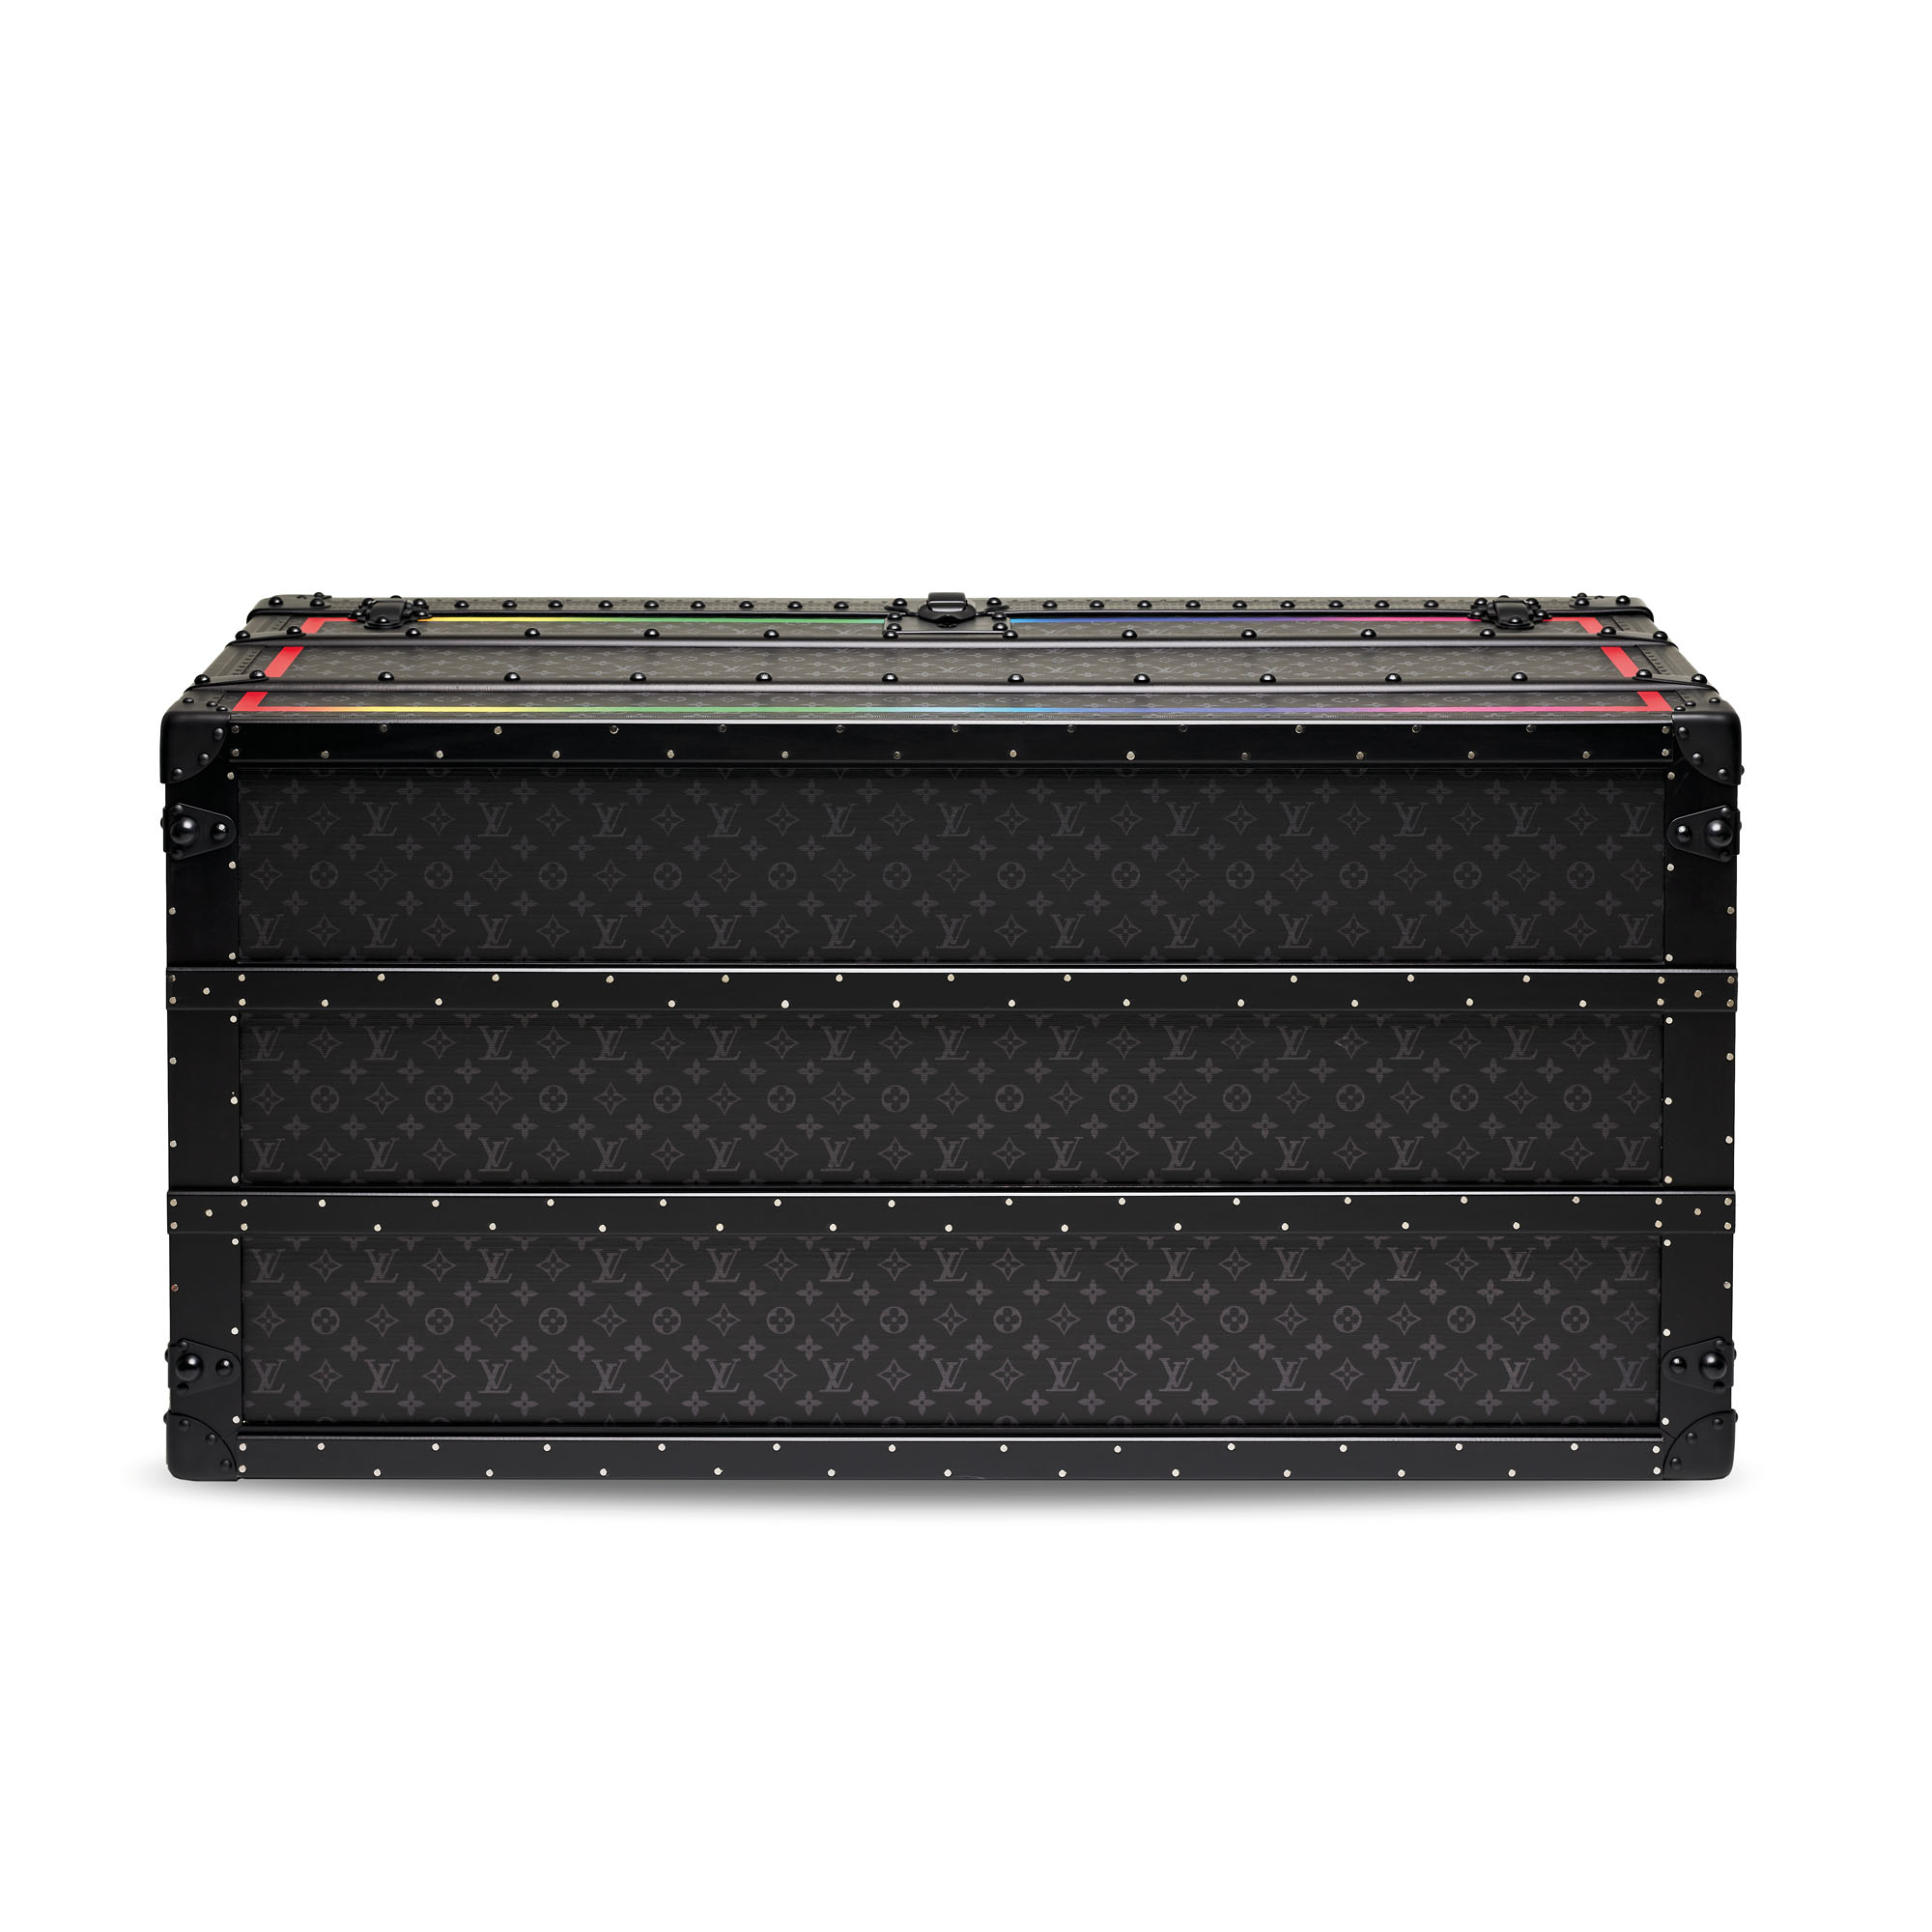 A LIMITED EDITION BLACK RAINBOW MONOGRAM MALLE COURRIER 110 TRUNK WITH BLACK HARDWARE BY VIRGIL ABLOH